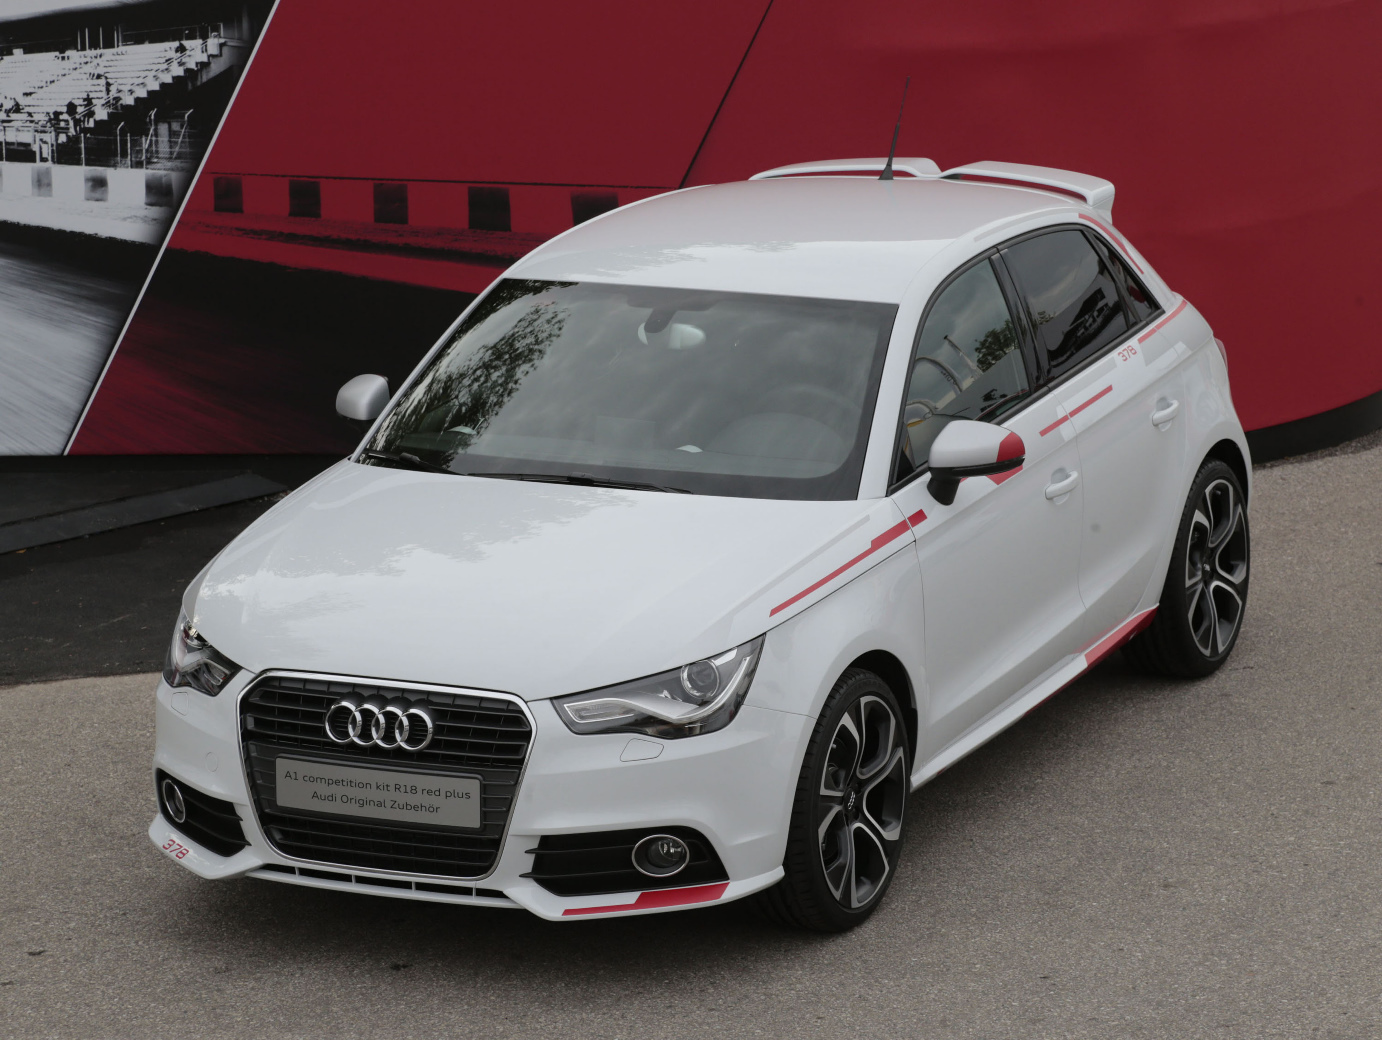 audi-A1_Competition_Kit-R18_06